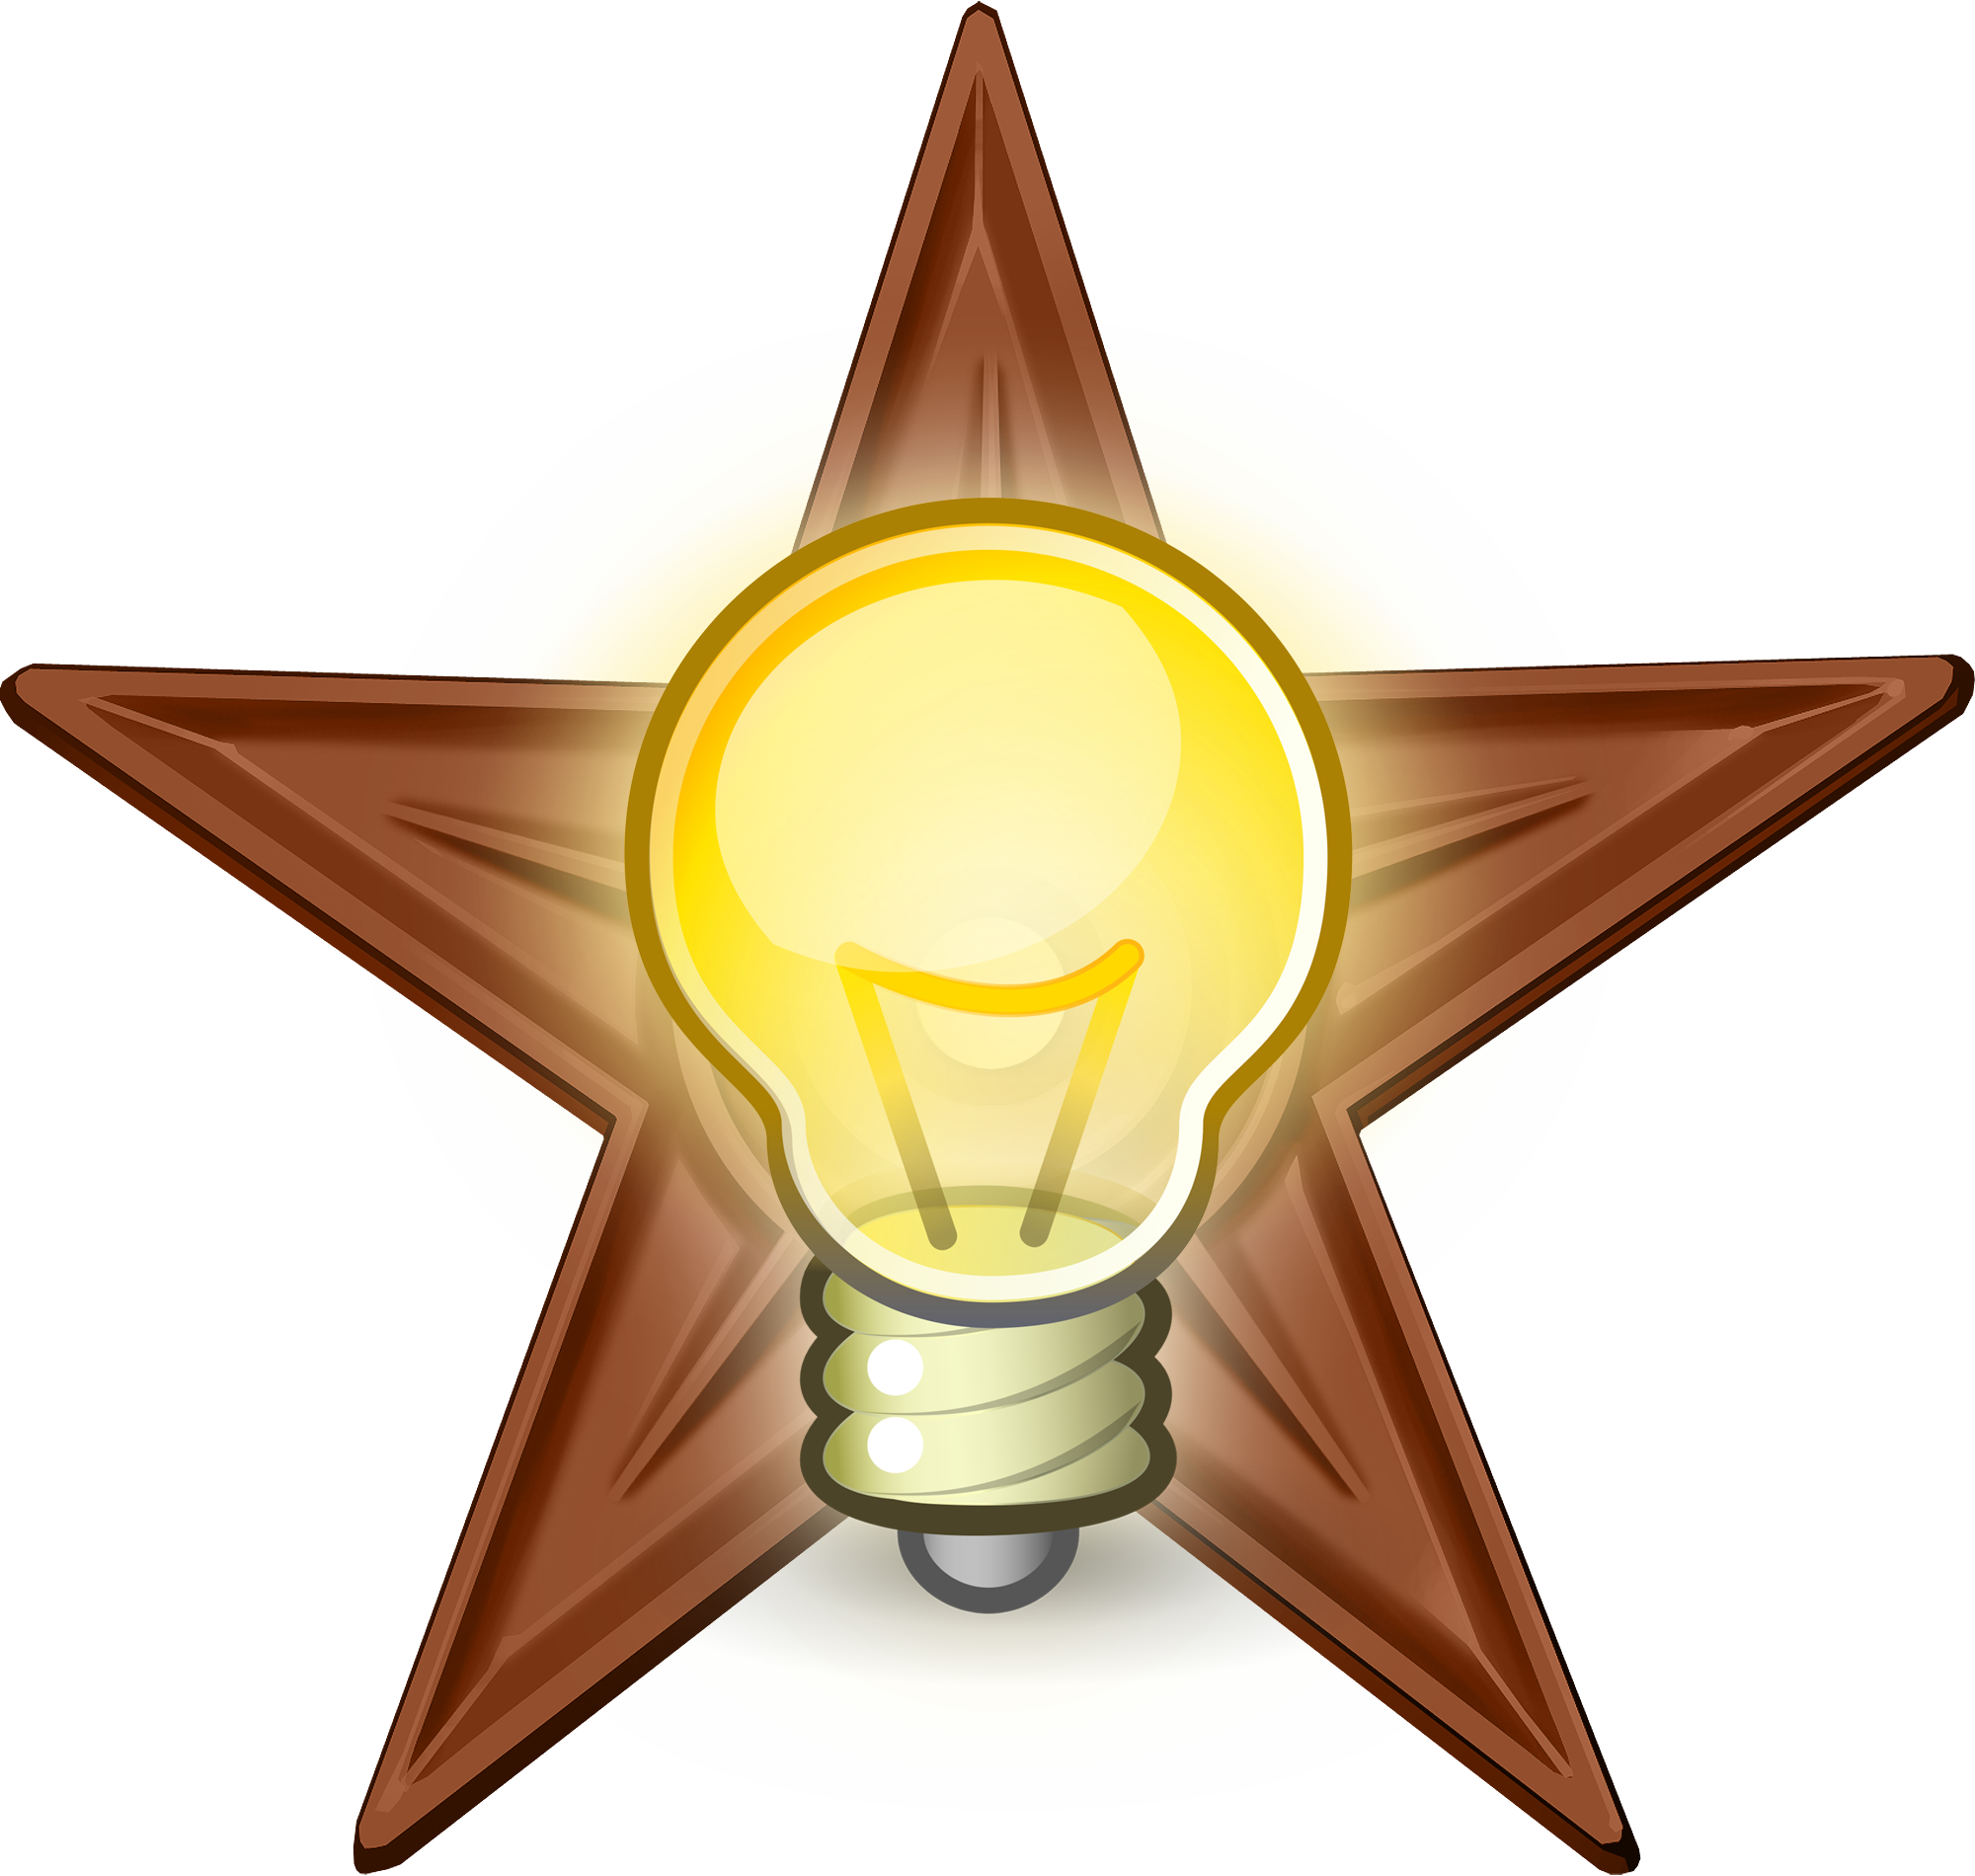 http://upload.wikimedia.org/wikipedia/commons/1/13/Brilliant_Idea_Barnstar_Hires.png